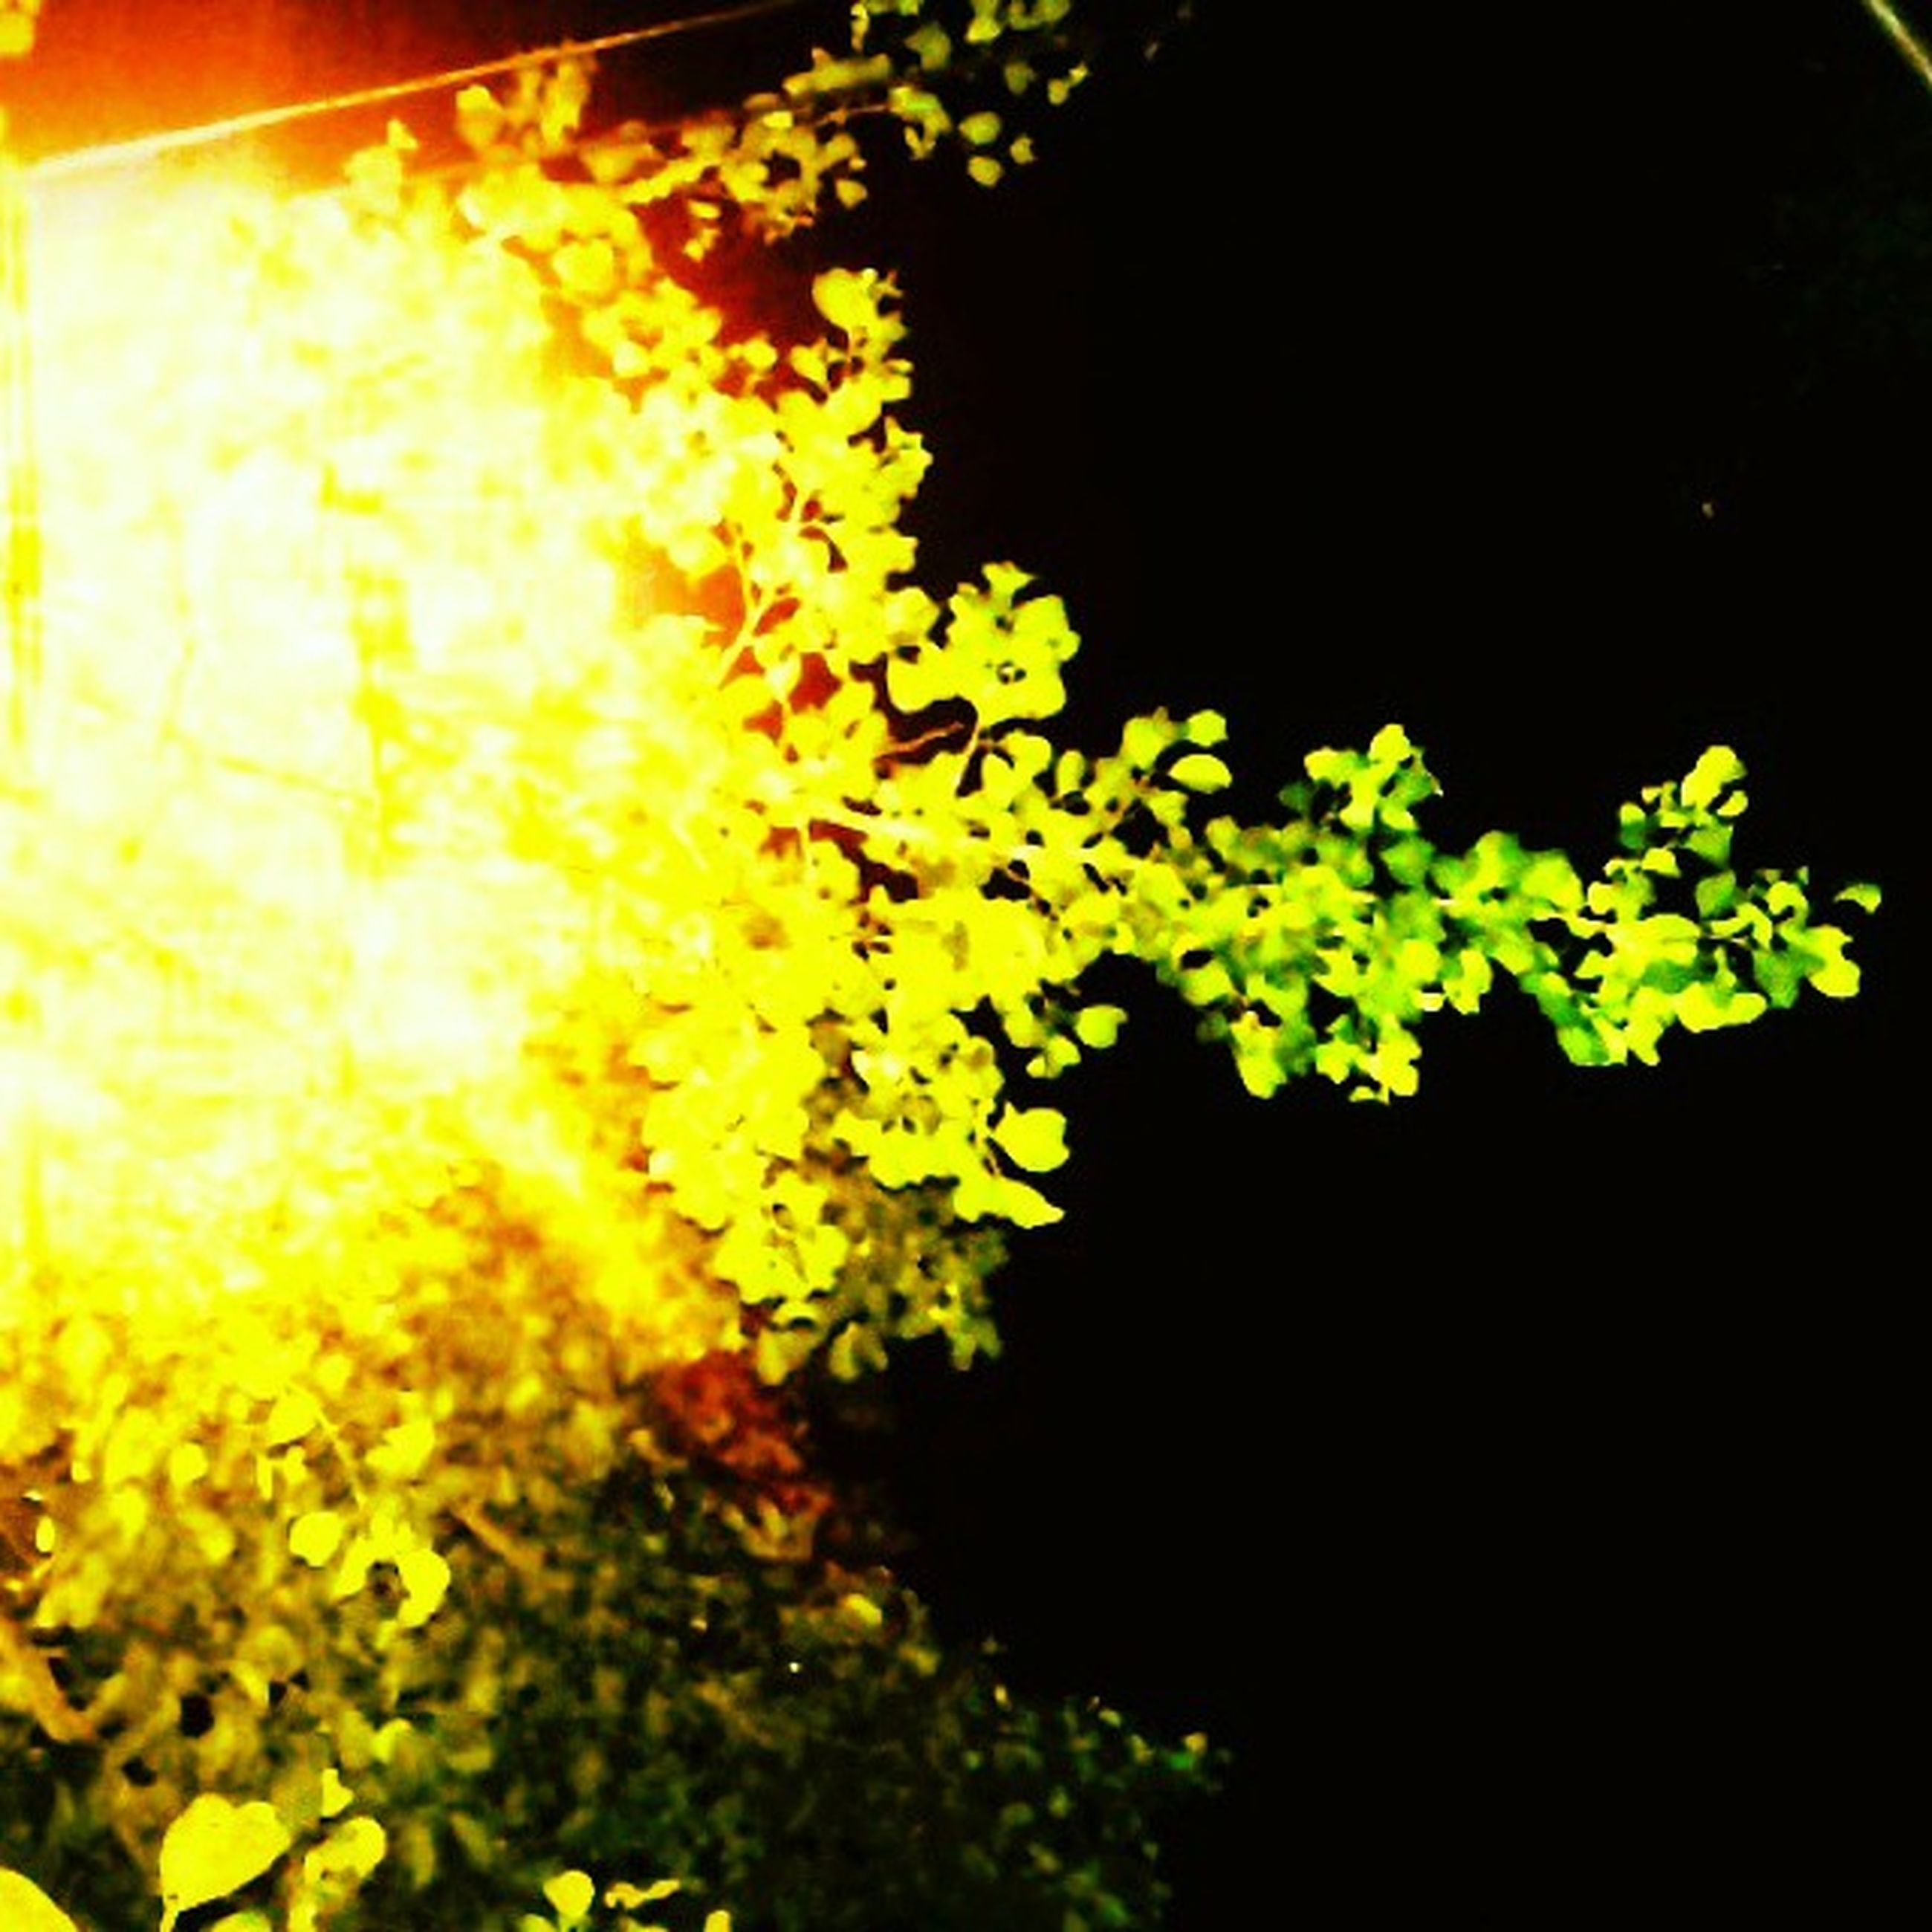 night, growth, leaf, yellow, plant, nature, tree, dark, close-up, illuminated, beauty in nature, no people, tranquility, selective focus, green color, outdoors, sunlight, branch, light - natural phenomenon